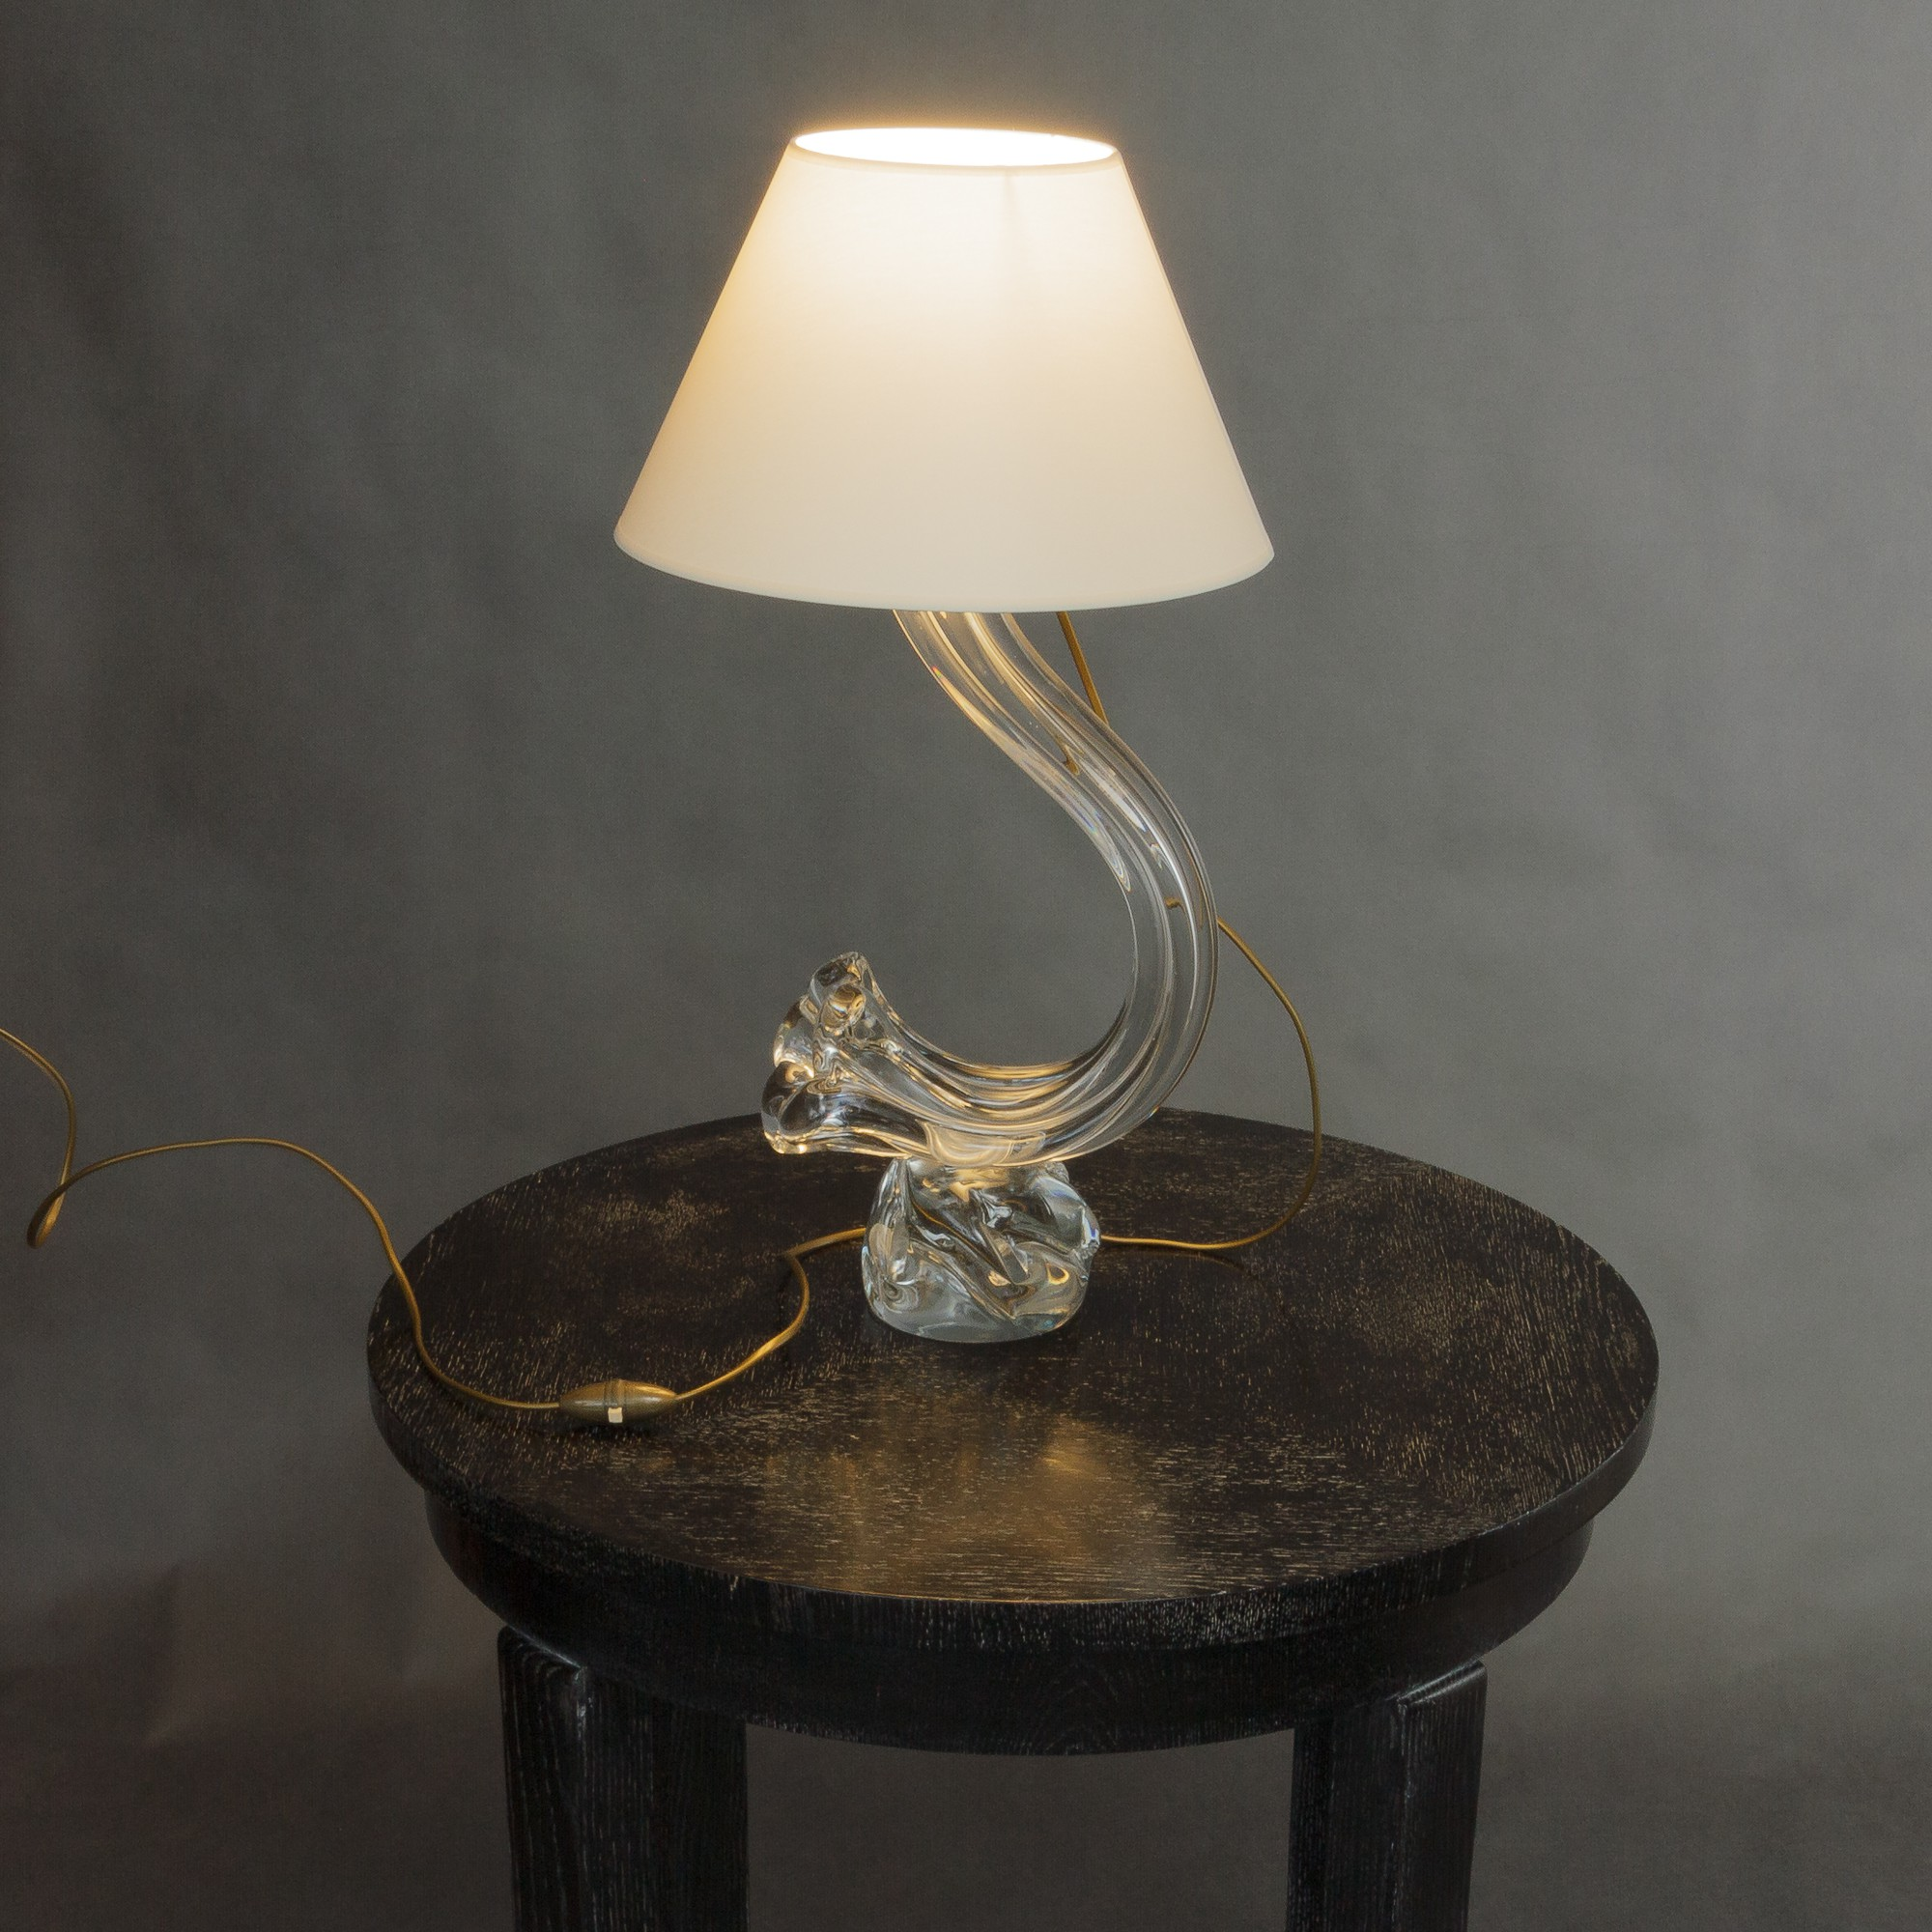 Daum Crystal Lamp With Lamp Shade 1950s Design Market